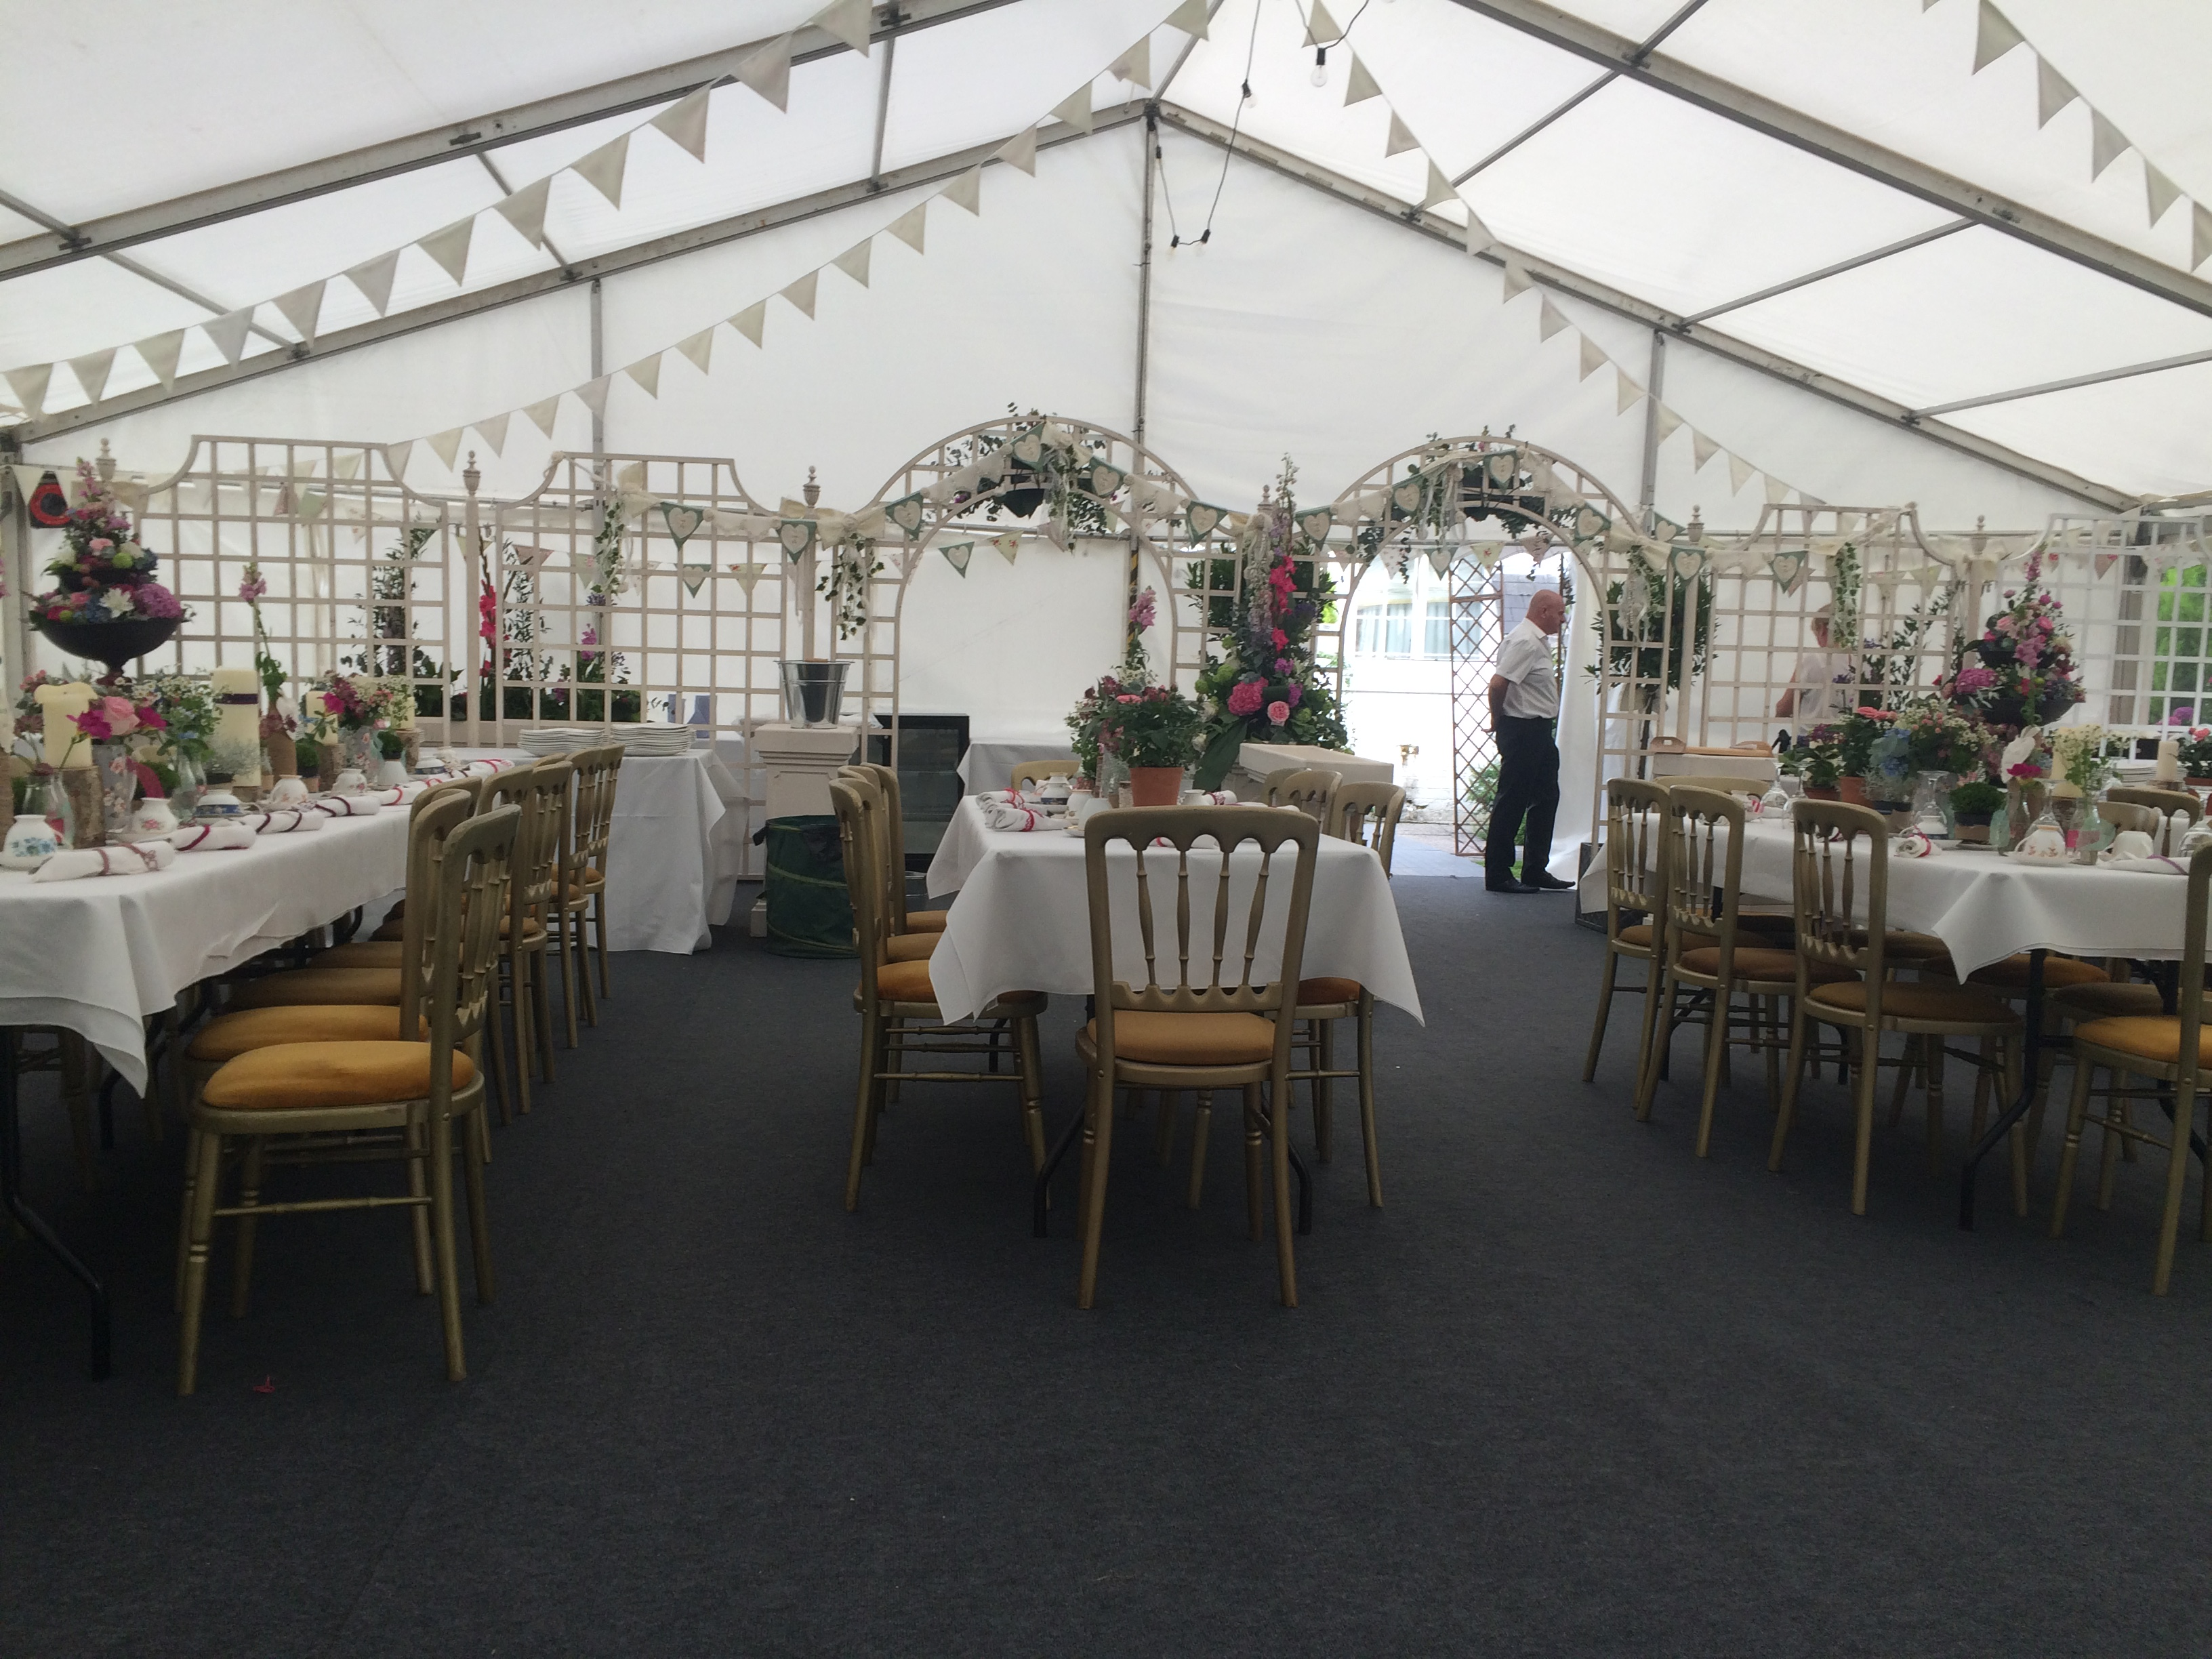 marquee-wedding-with-no-interior-lining